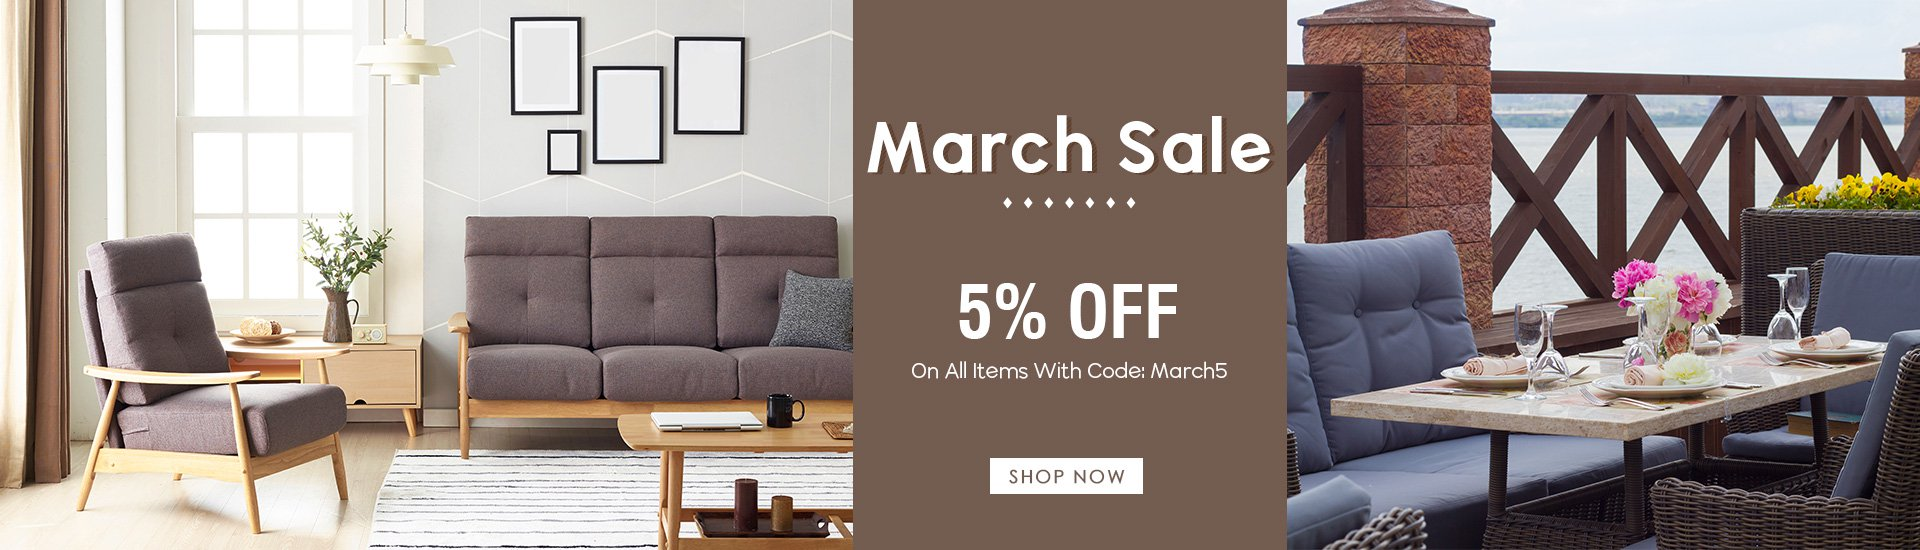 March 5% Off